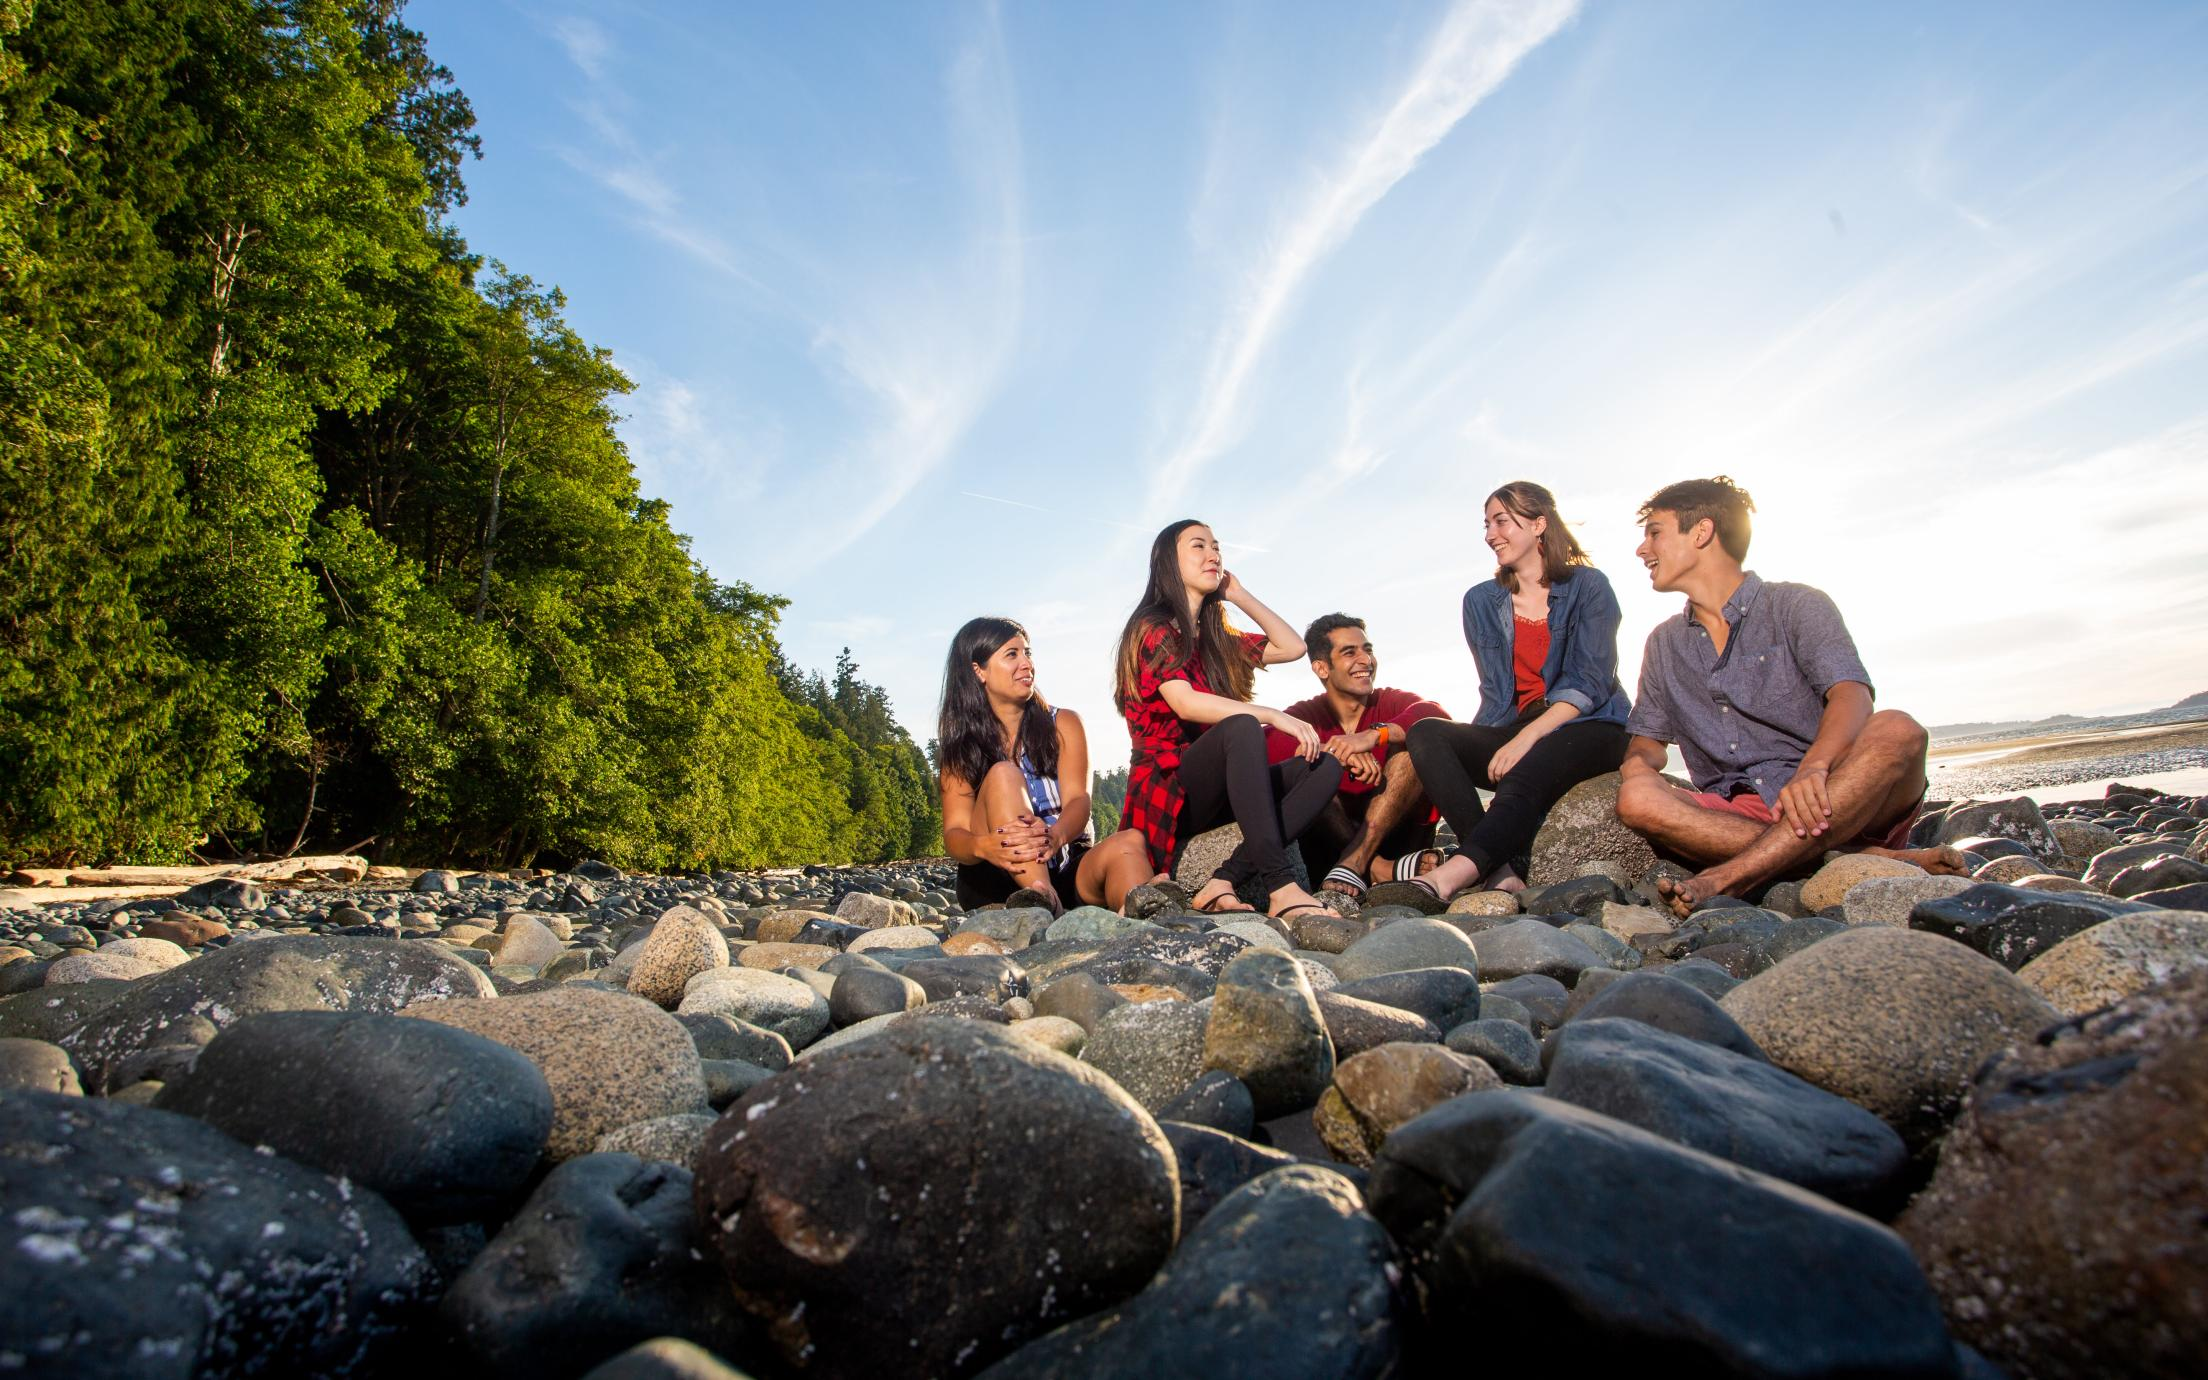 VIU Students at Beach